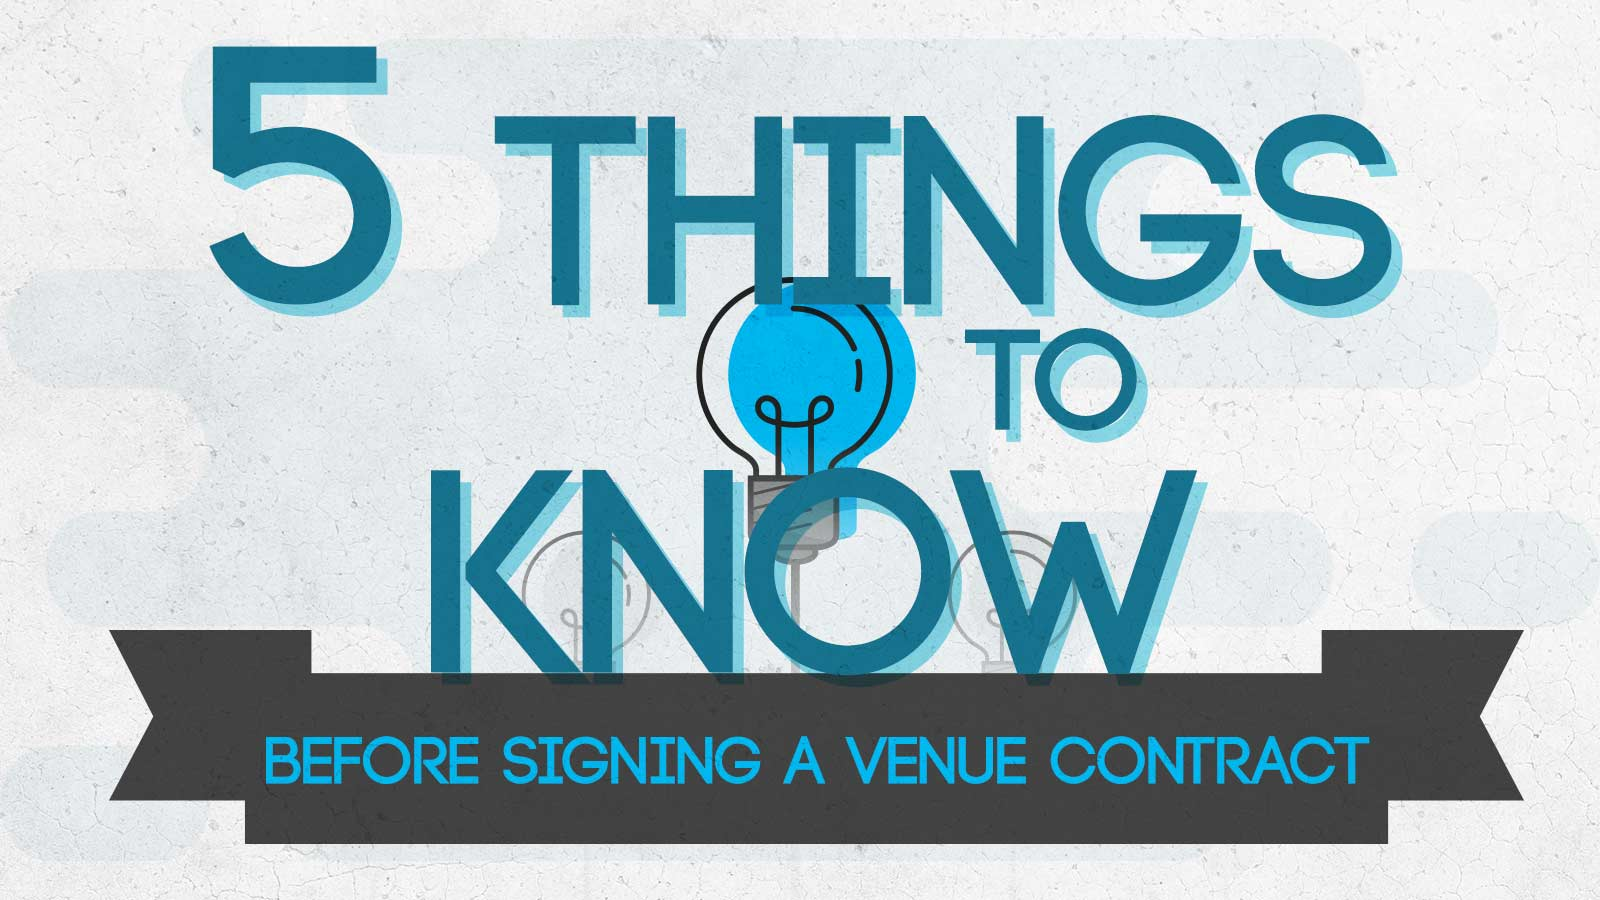 5 Things to Know Before Signing a Venue Contract